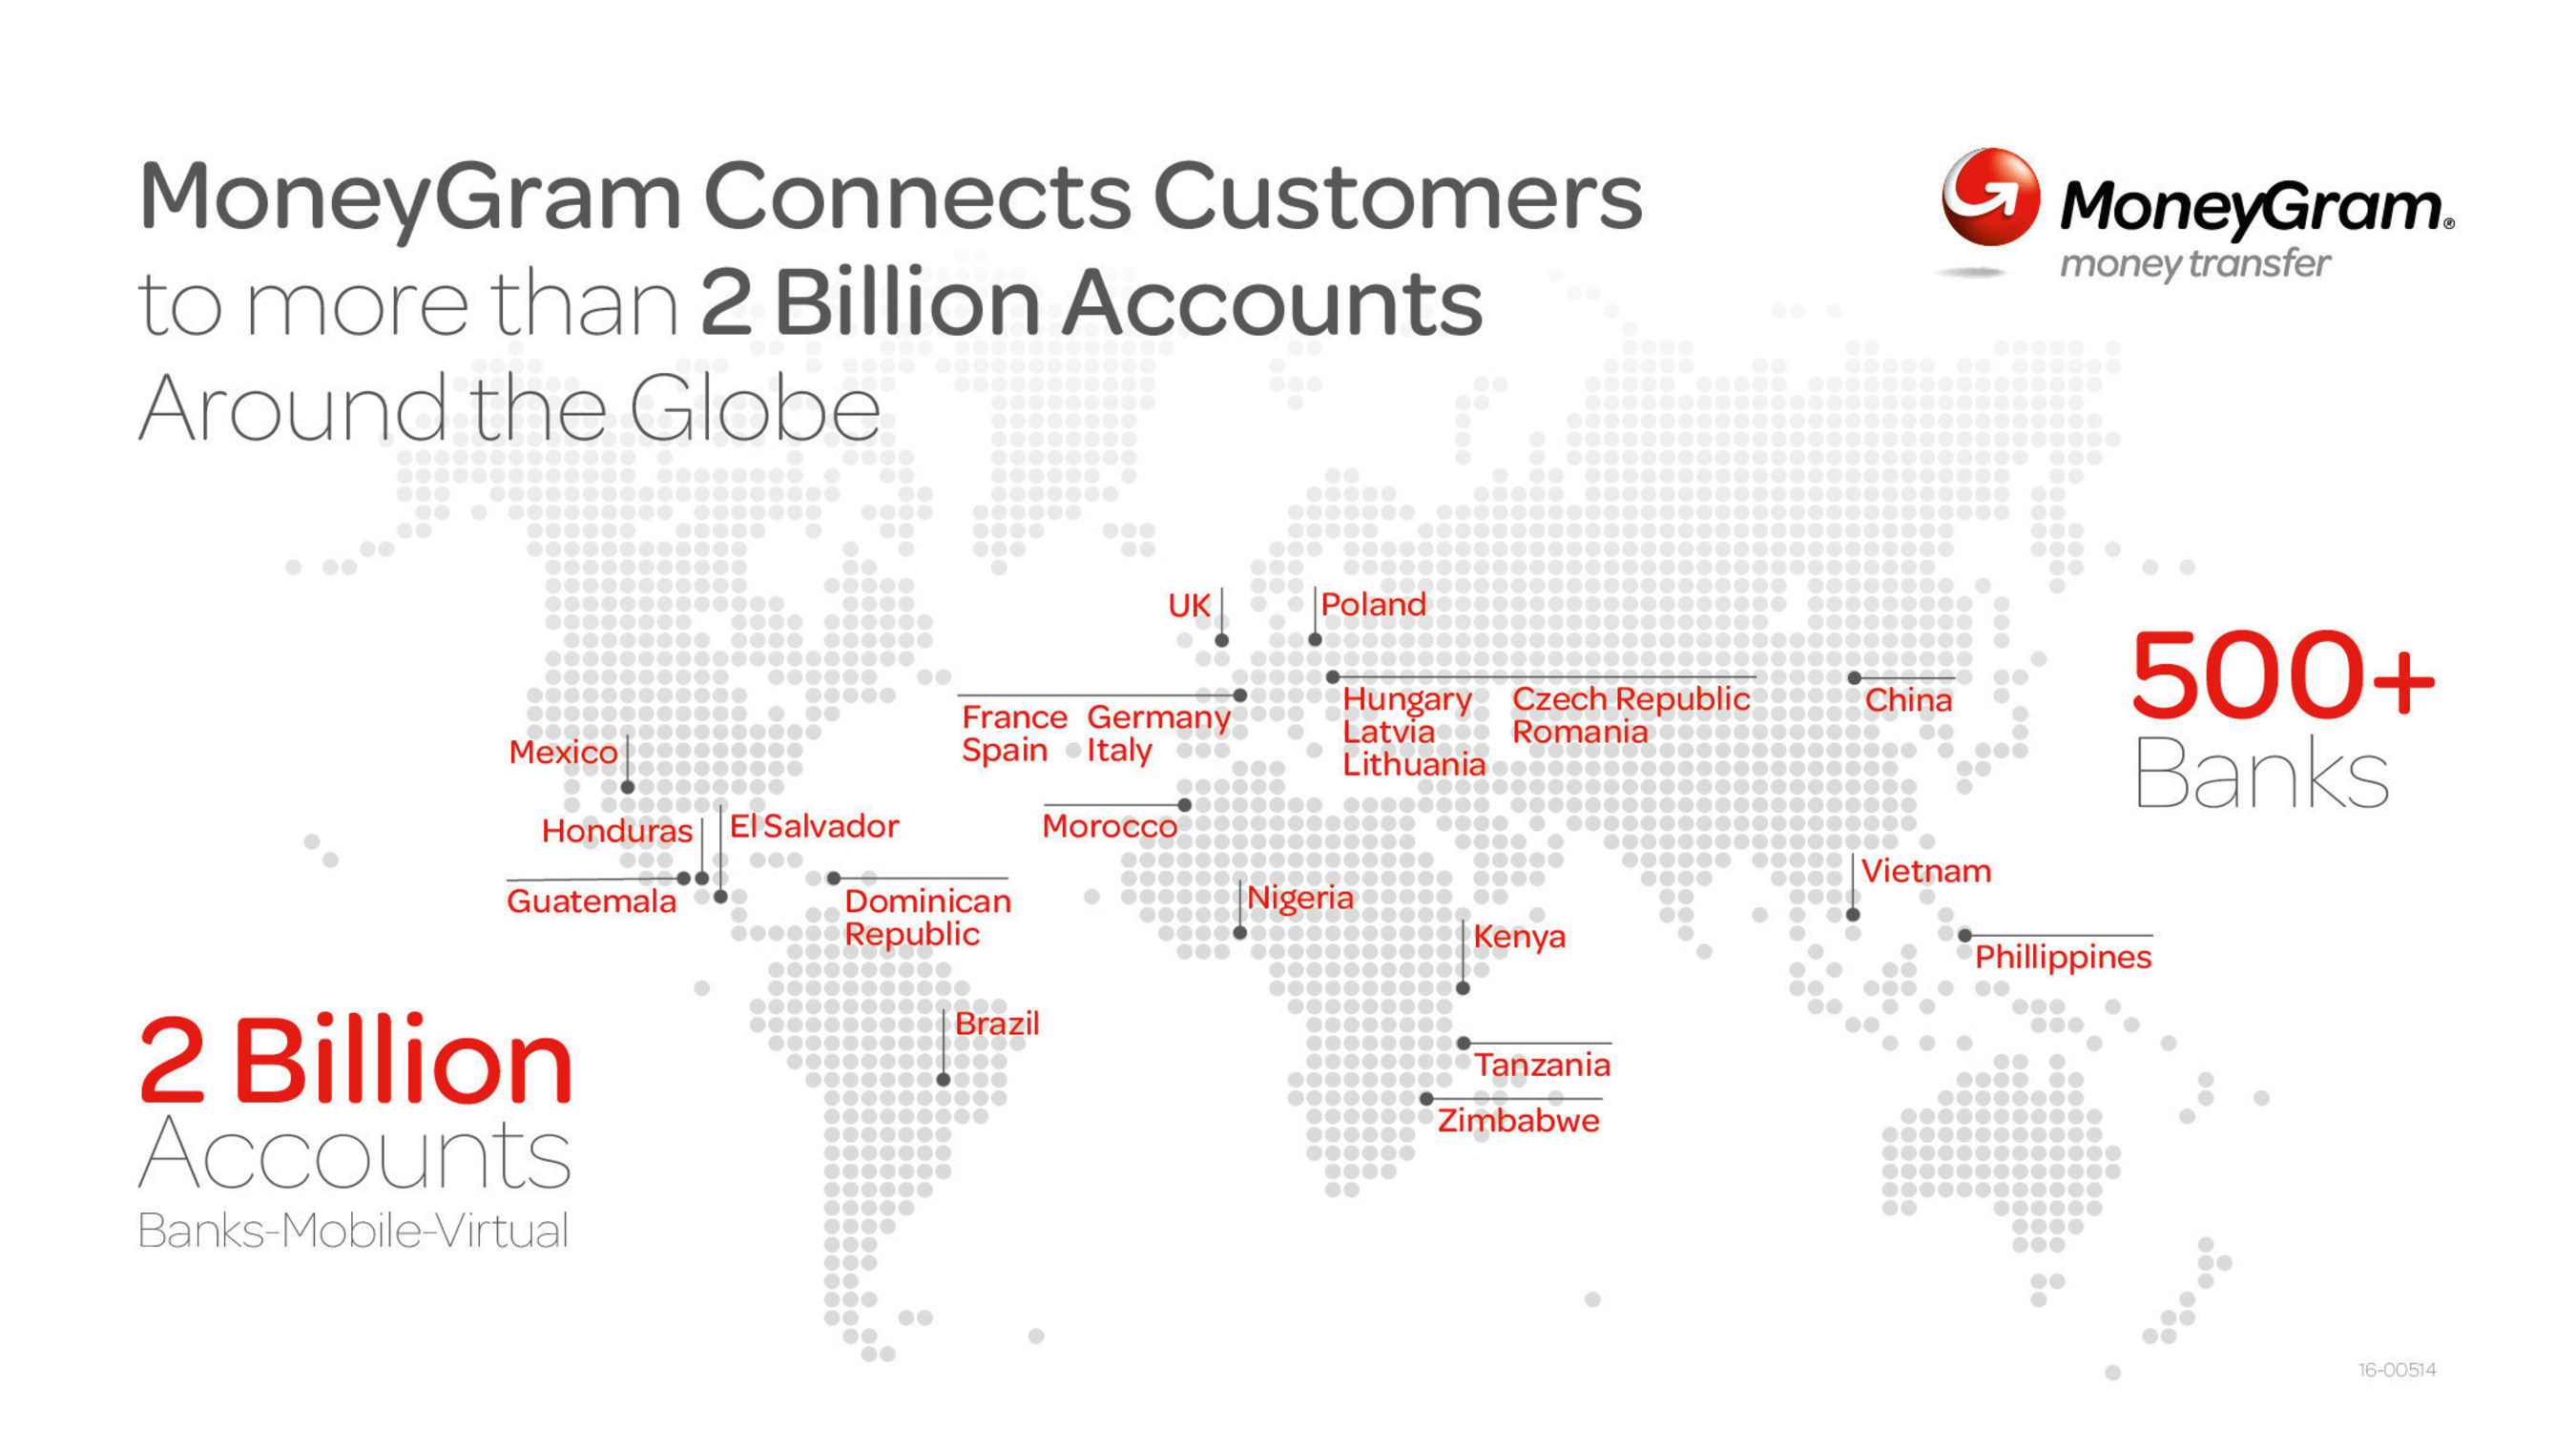 MoneyGram Connects Customers to more than 2 Billion Accounts Around the Globe